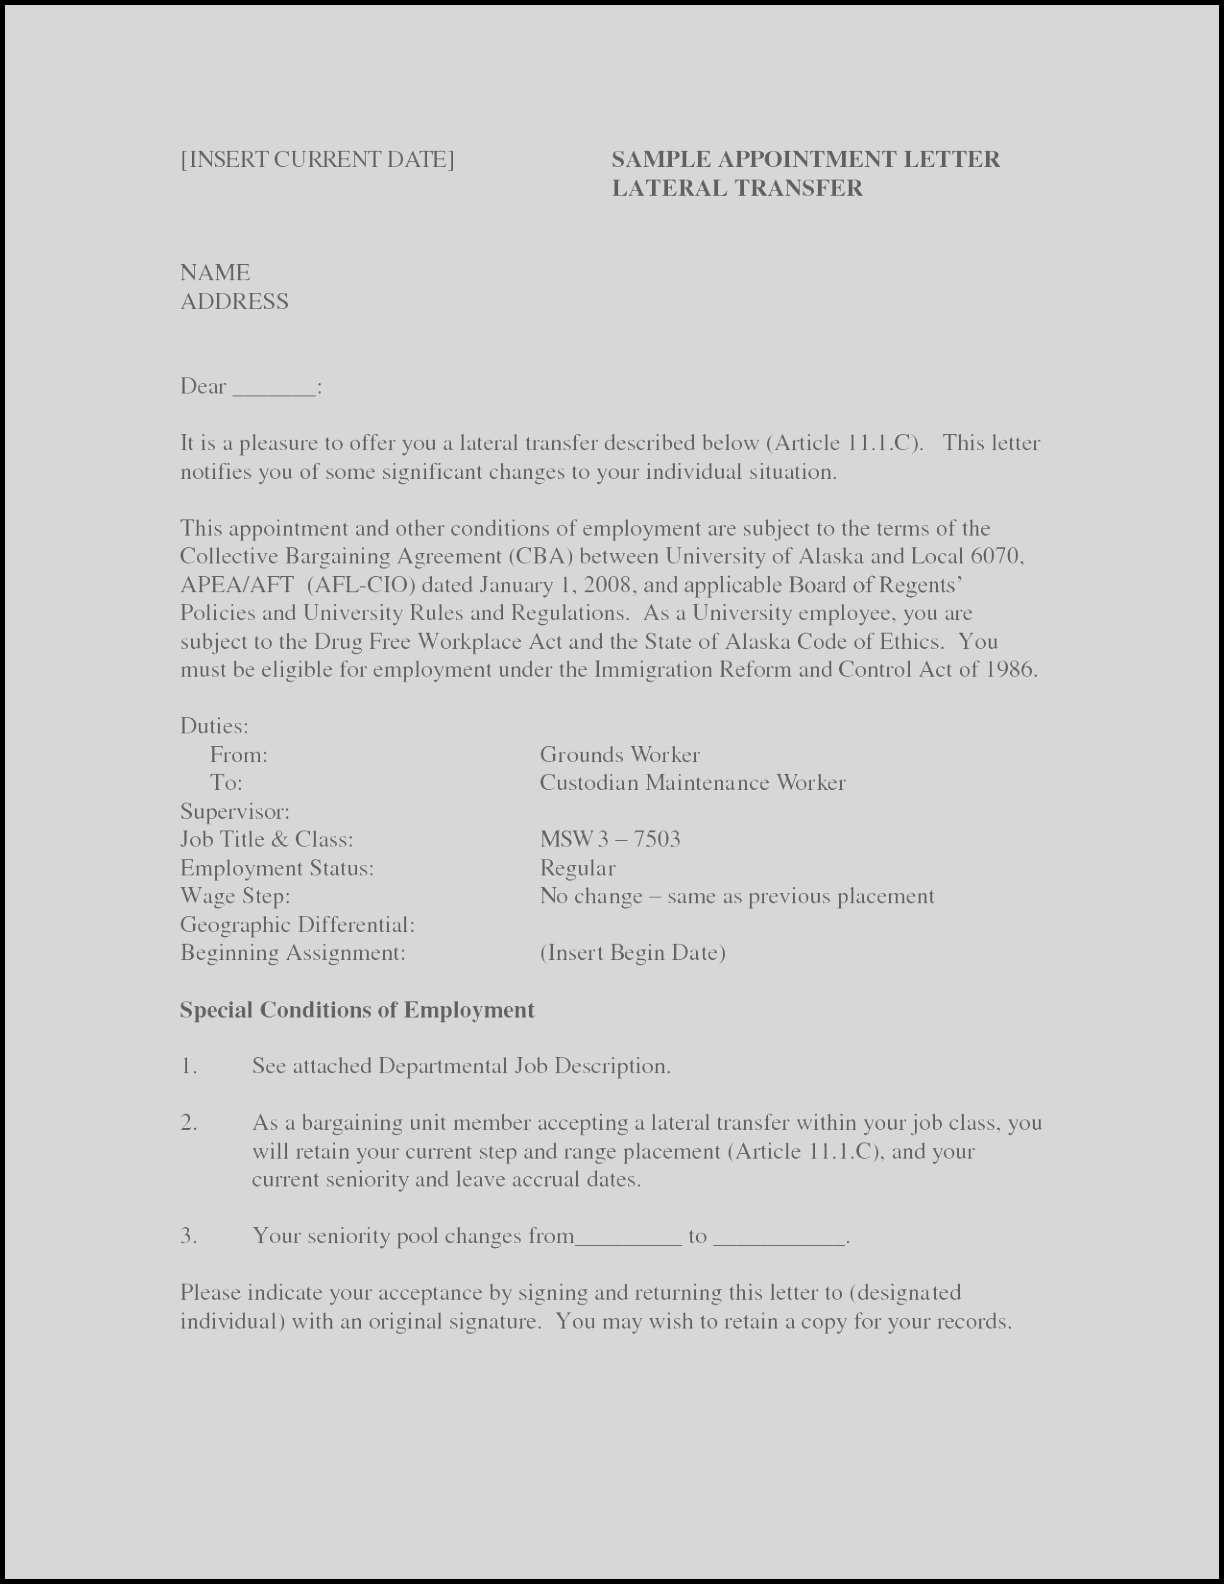 sample resume for career change Collection-Career Change Resume Sample Luxury Resume Doc Beautiful Resume Sample Doc Best Resume Doc 0d Resume 17-b